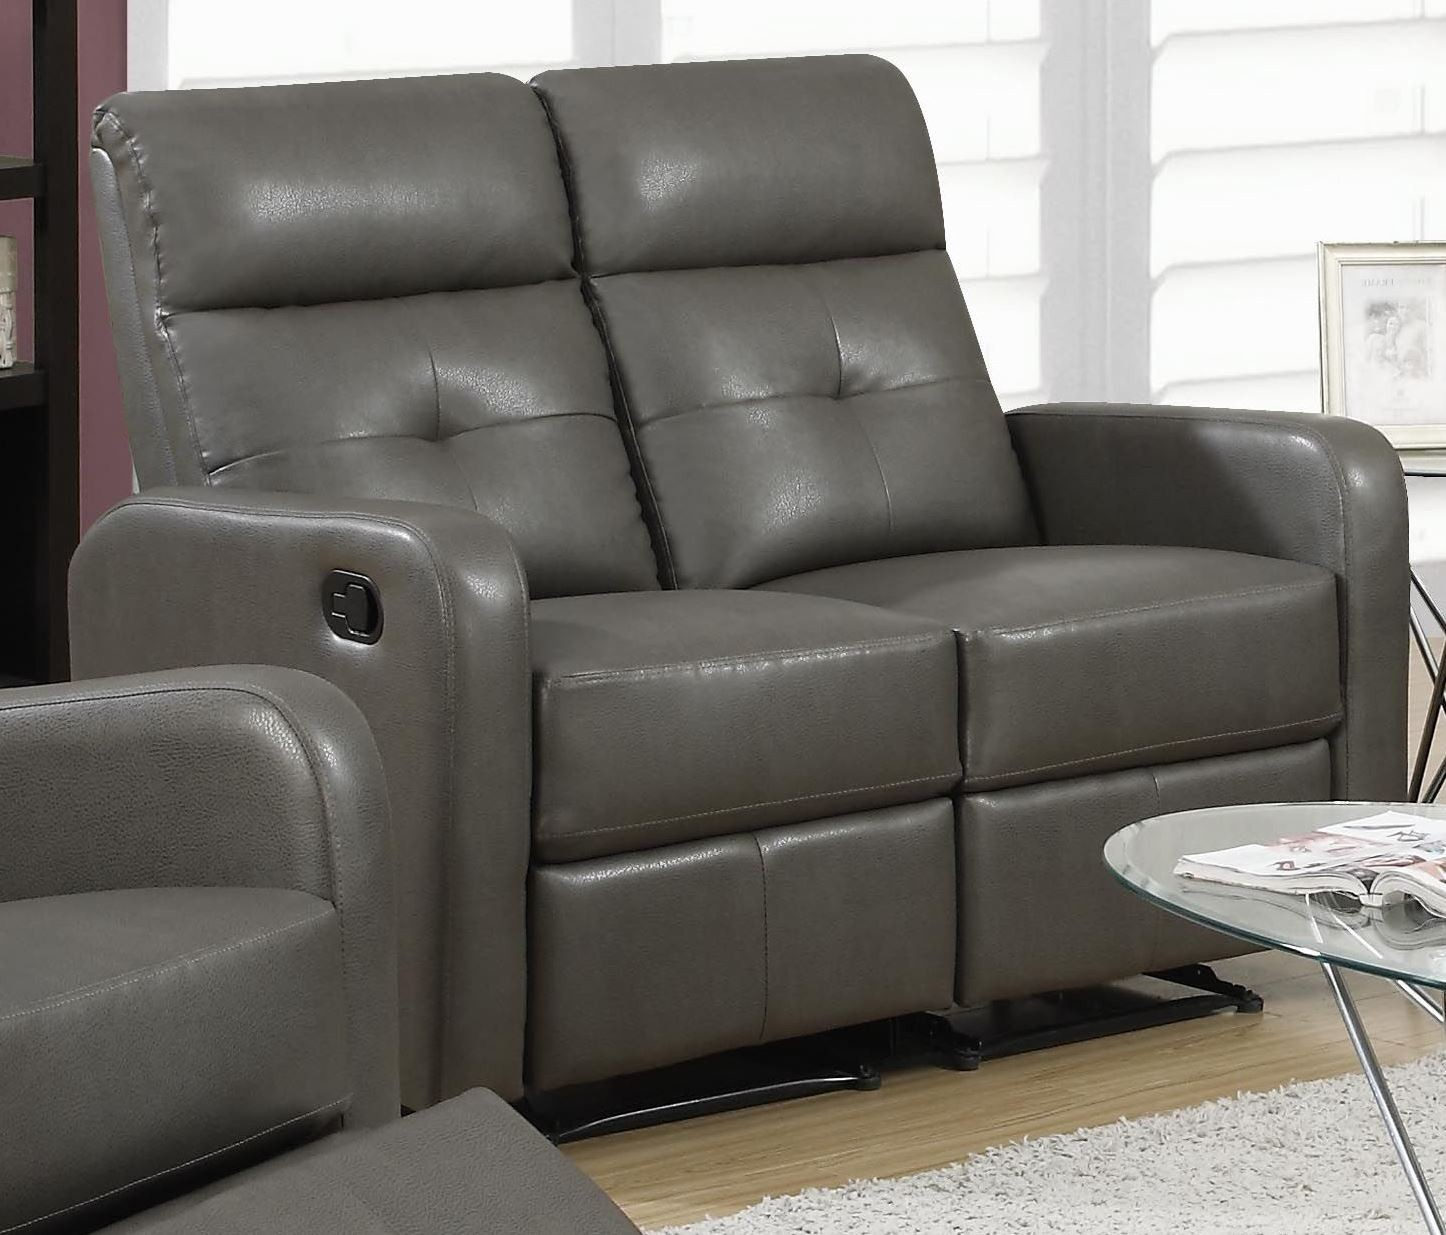 85gy 2 Charcoal Gray Bonded Leather Reclining Loveseat From Monarch Coleman Furniture